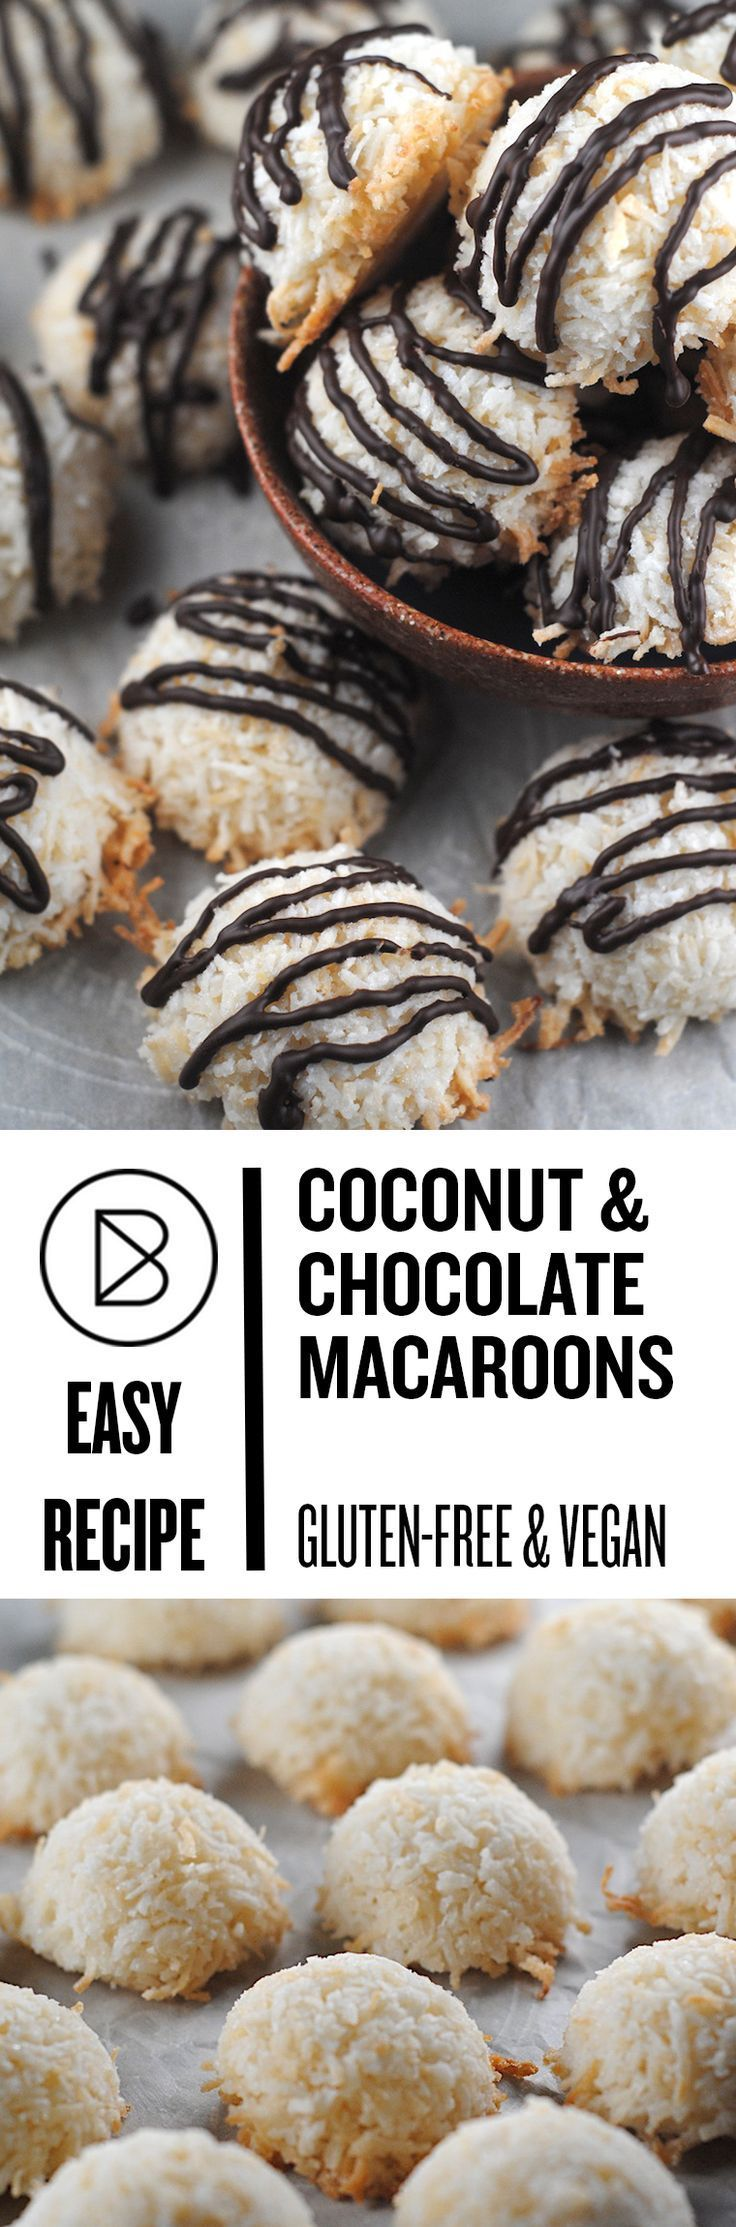 Vegan Macaroons: These are super easy coconut cookies that are both vegan and gluten-free.